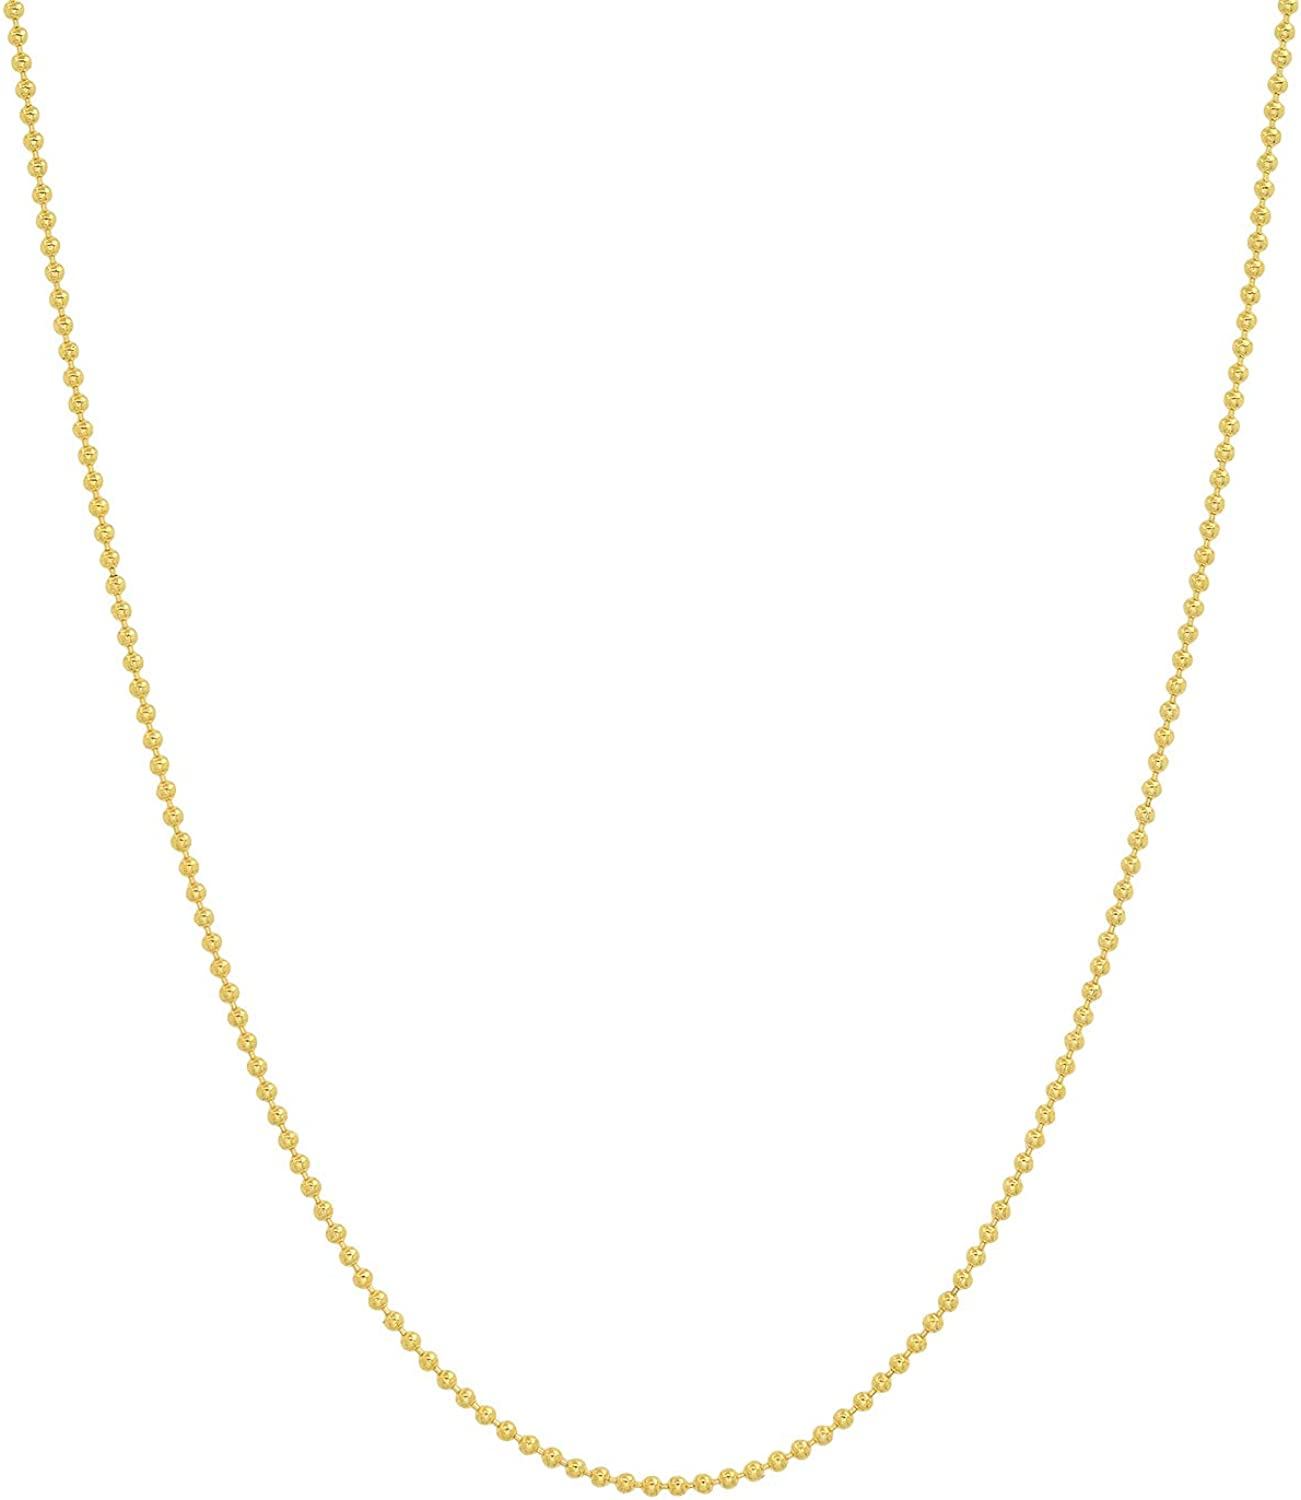 Jewelry Pilot 14K Yellow Gold 1mm Ball Link Chain Necklace with Spring Ring Clasp